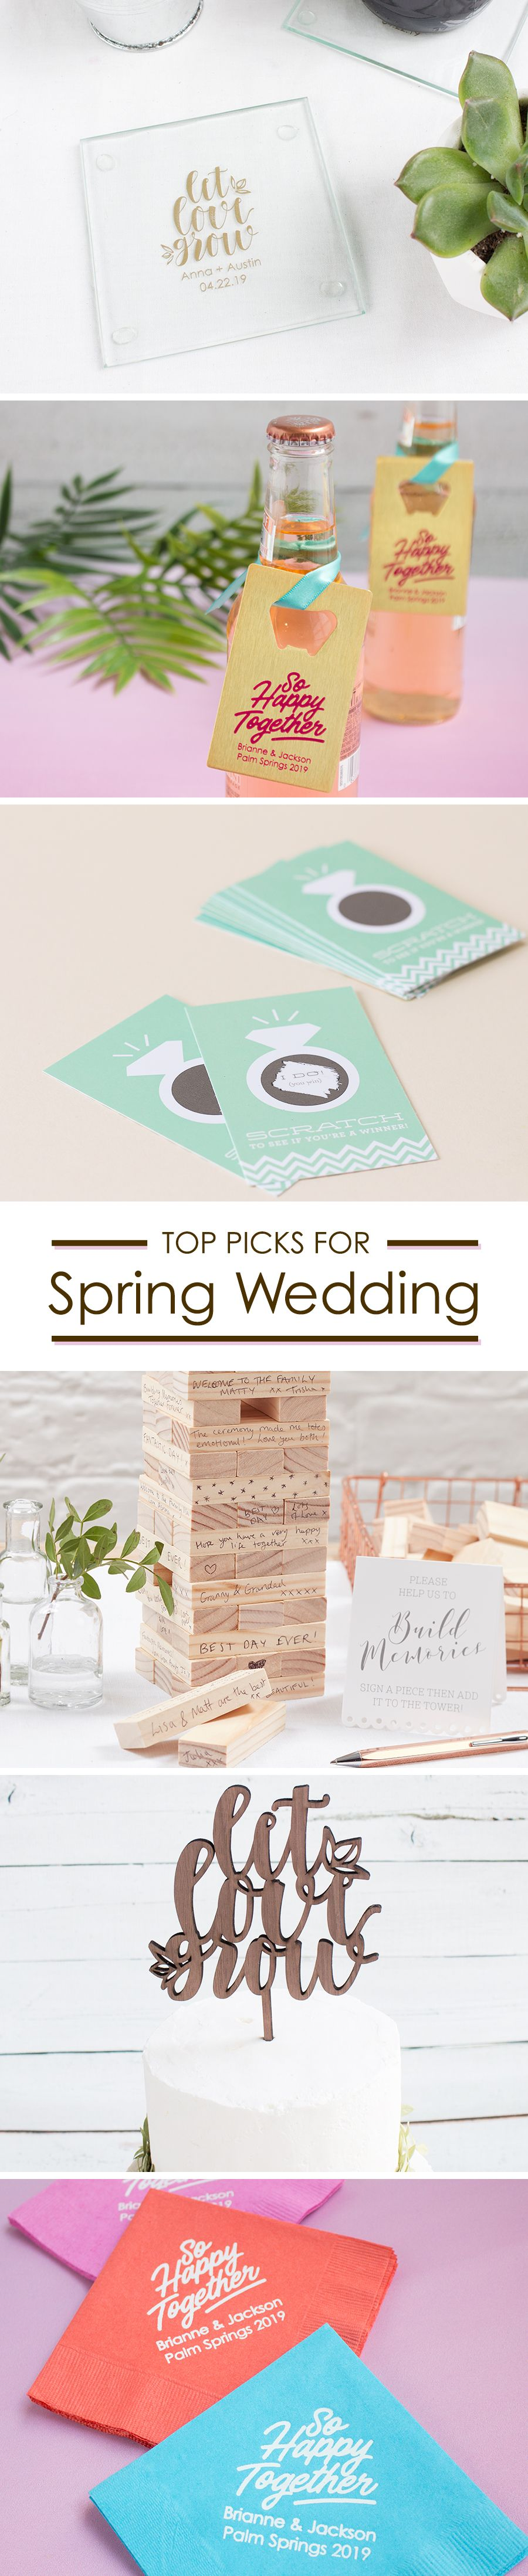 Wedding decorations for house january 2019 Need ideas for Spring weddings Weuve got you Take a look at some